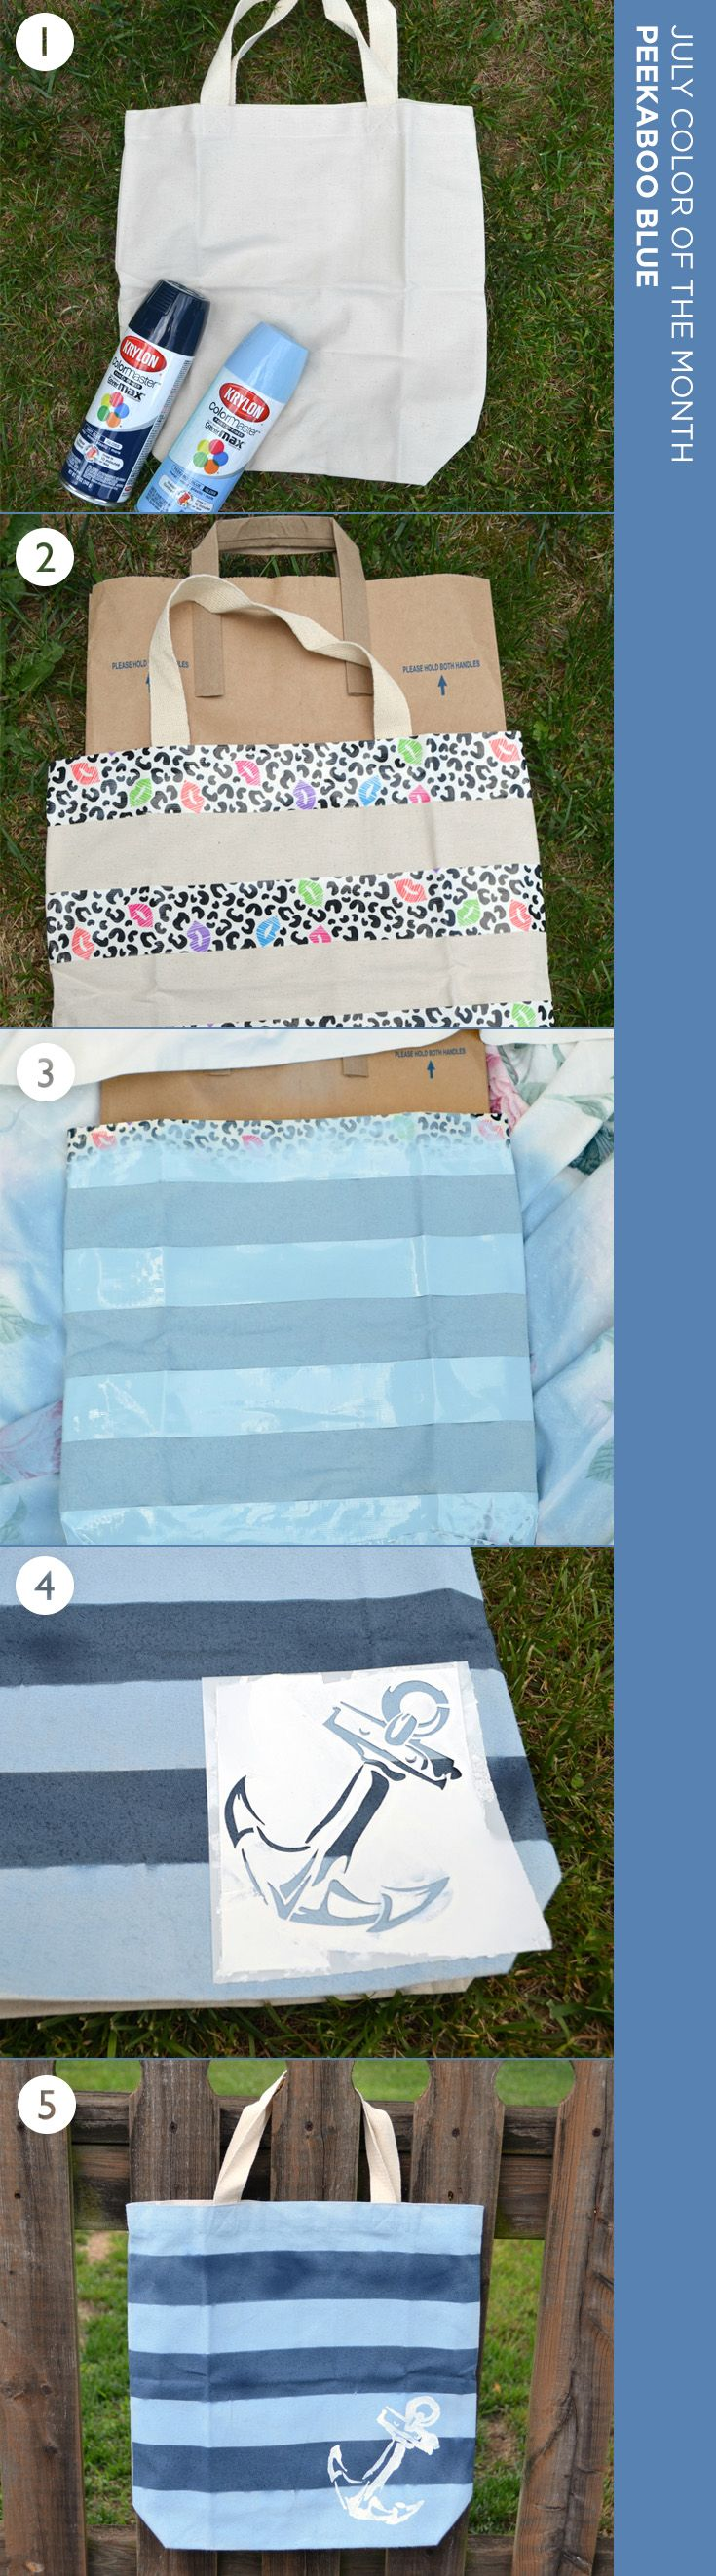 Pack up and head to the beach with this nautical tote bag, painted using Krylon's July Color of the Month, Peekaboo Blue. Fashion your own with instructions from @dancers4life  #DIYIdeas #DIYCrafts